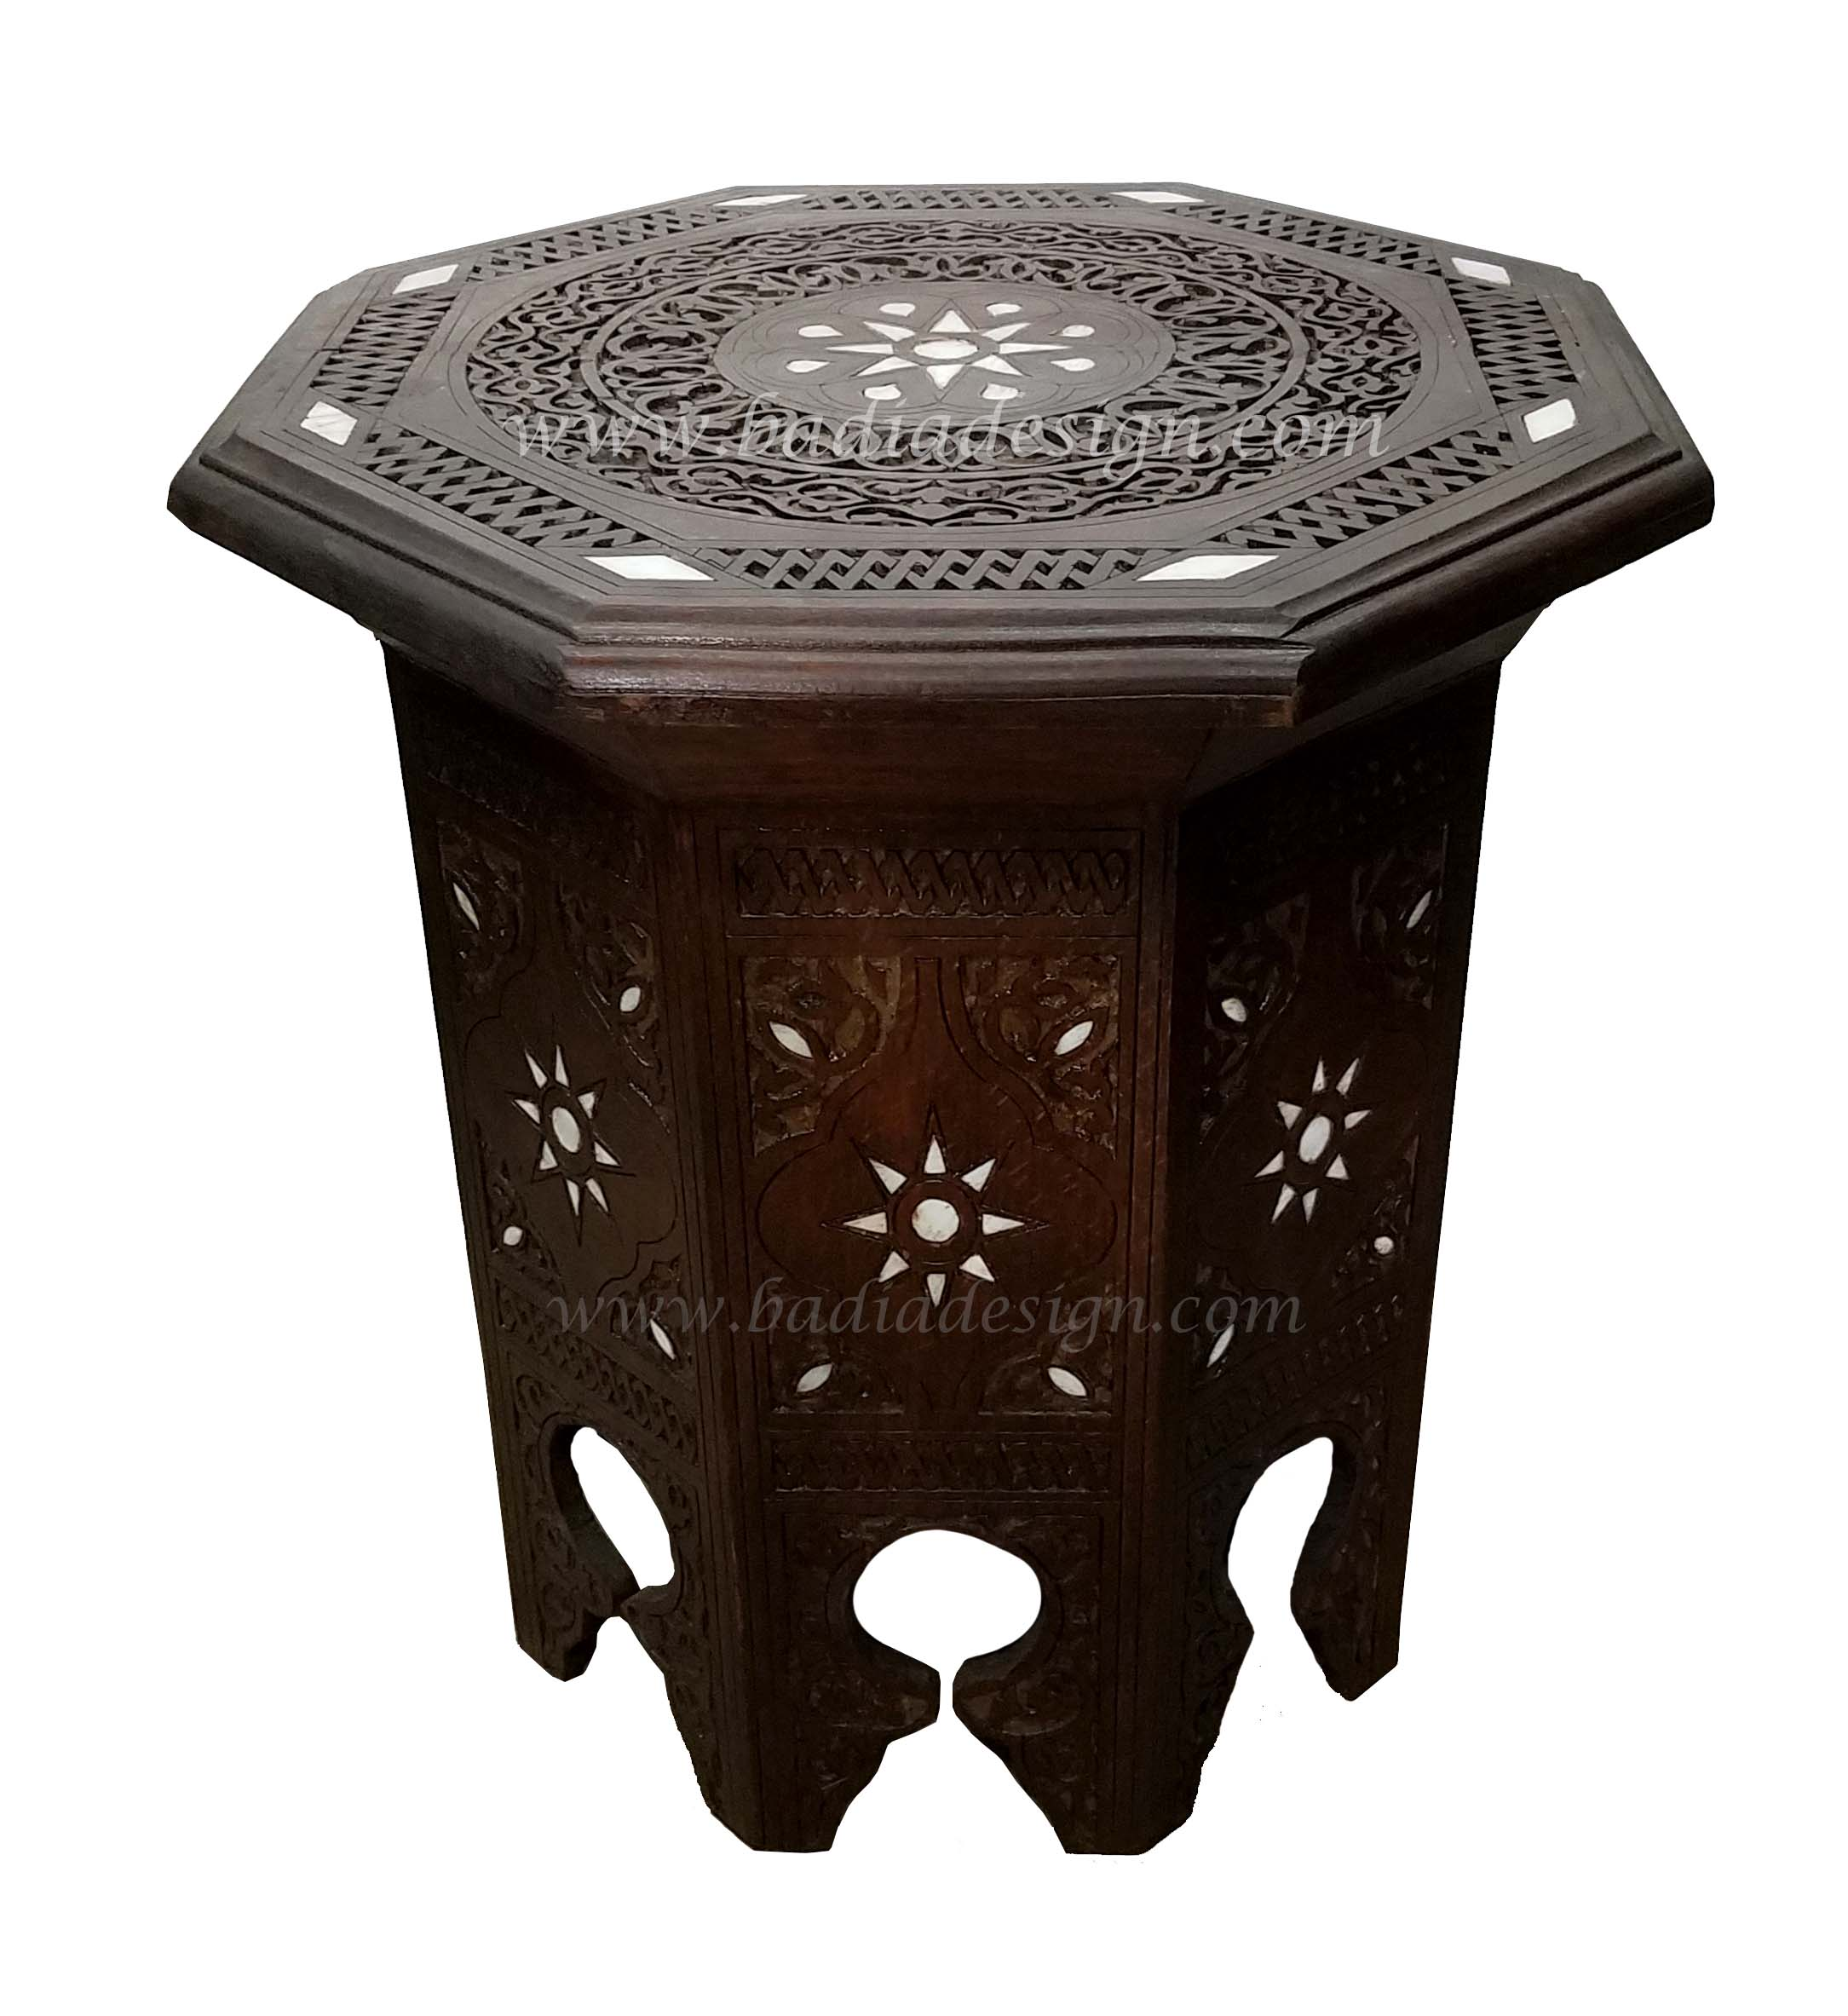 bone-inlay-side-table-mop-st054-1.jpg